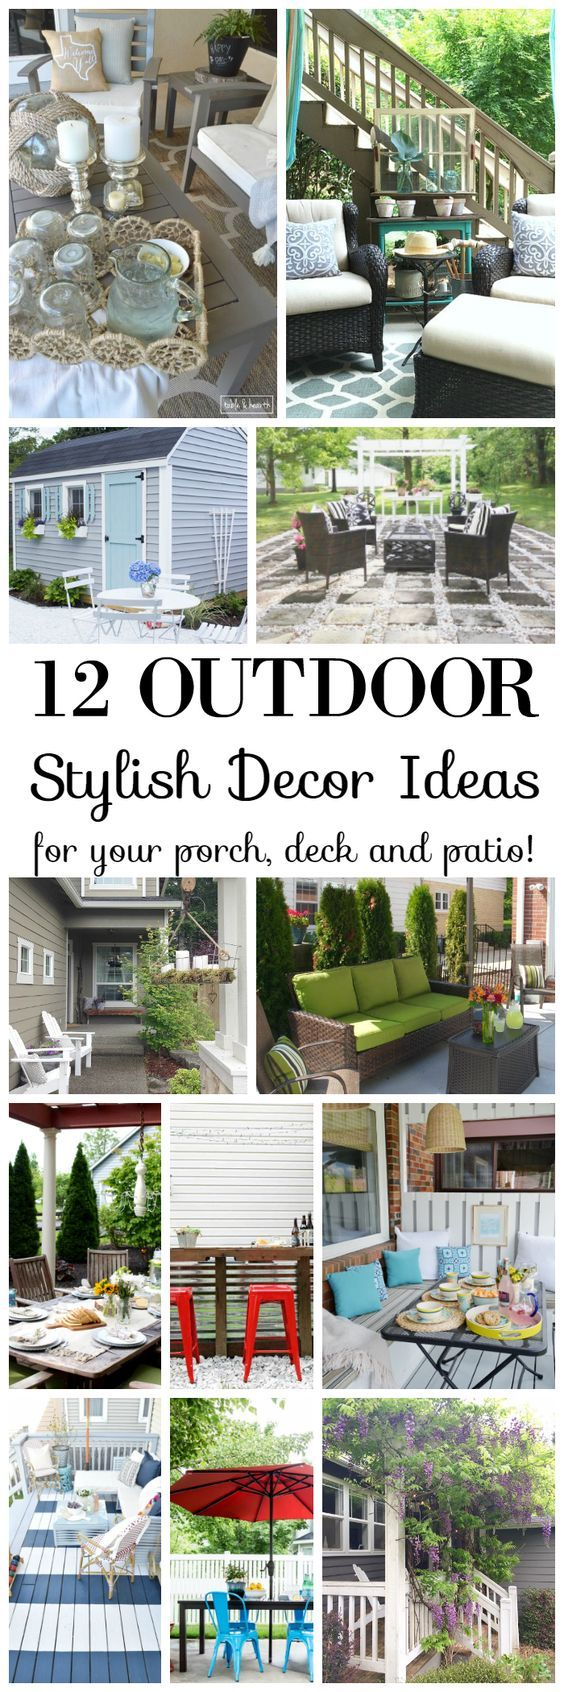 742 Best Outdoor Decorating Ideas Images On Pinterest